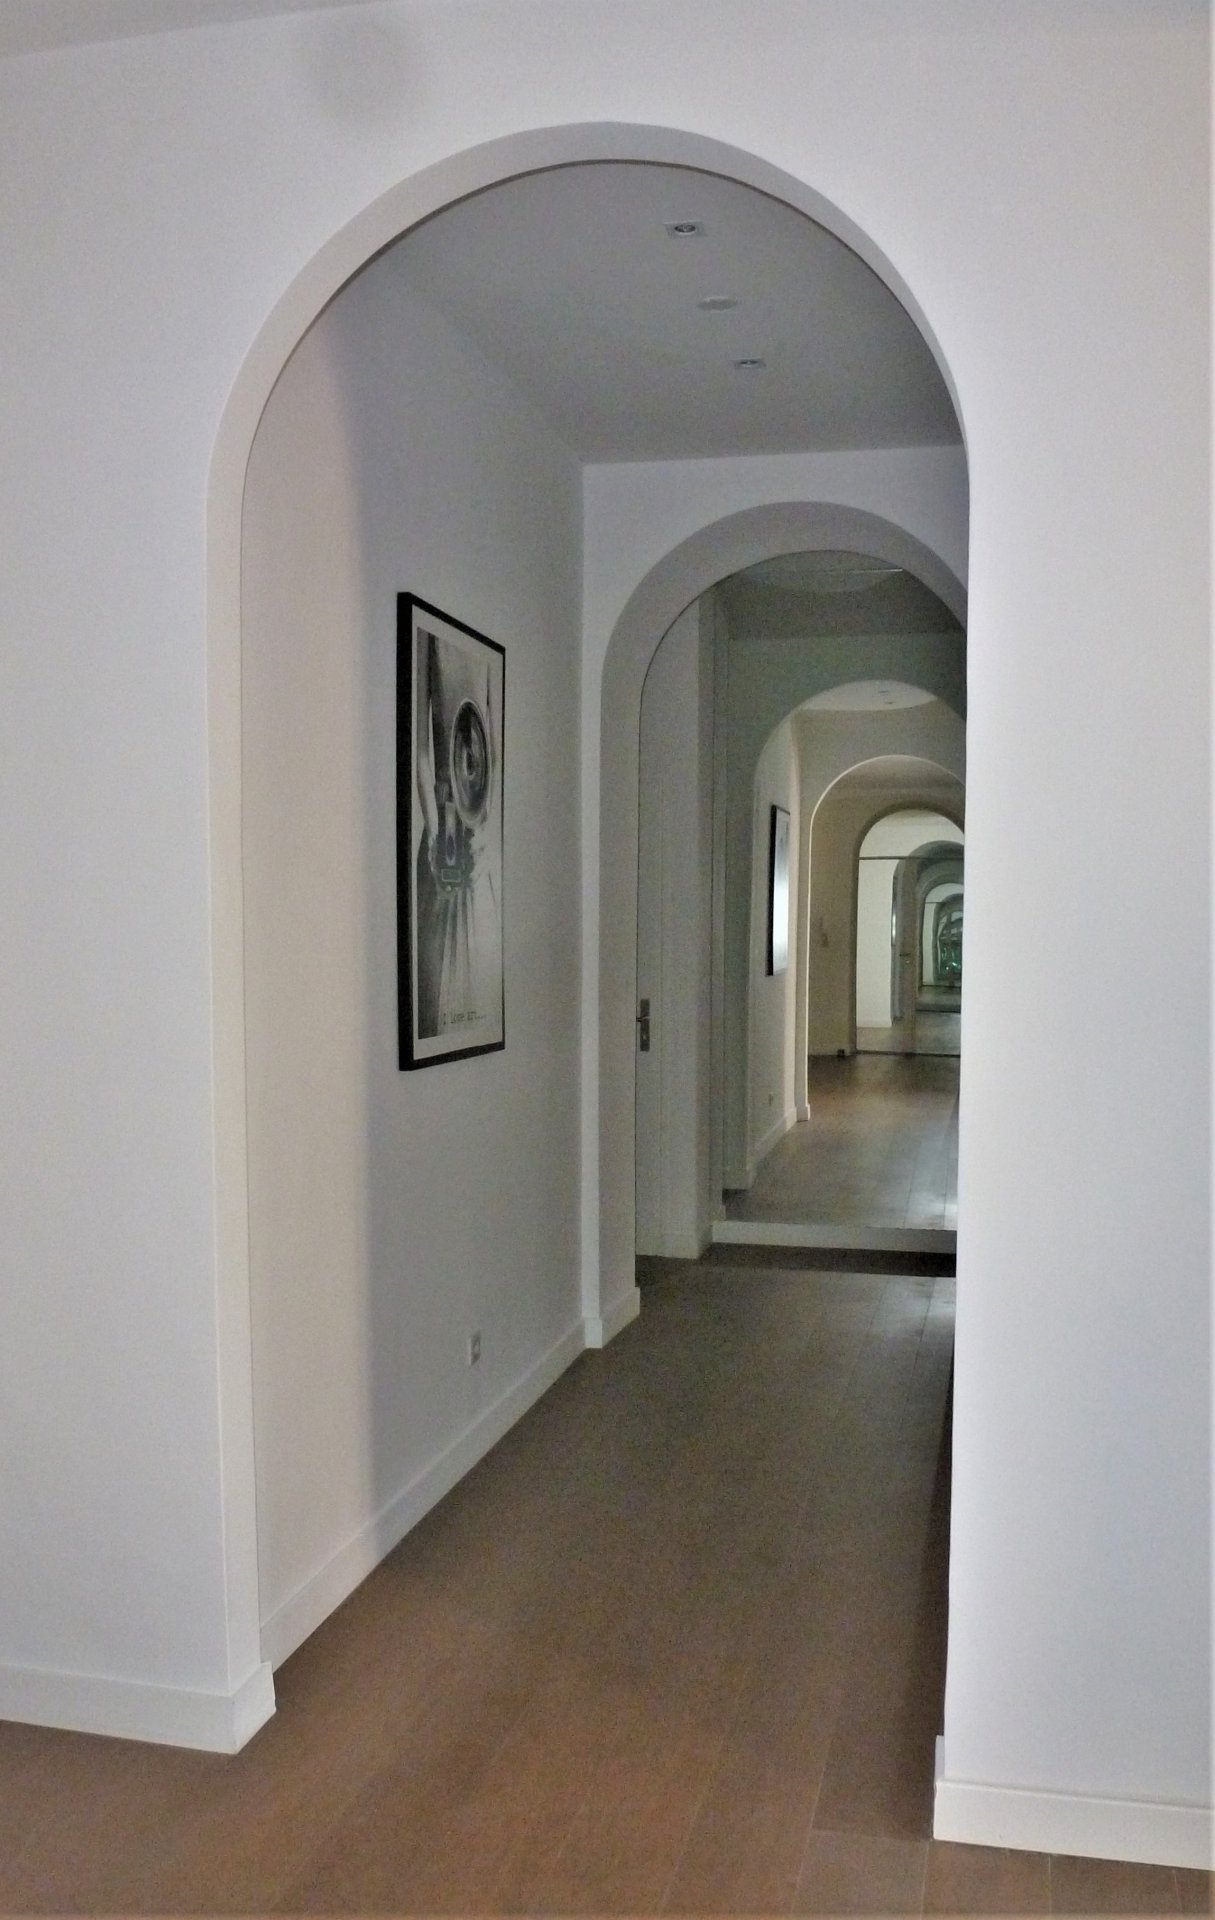 CANNES BANANE CENTRE - 4P150M² - BOURGEOIS - BELLE RENOVATION